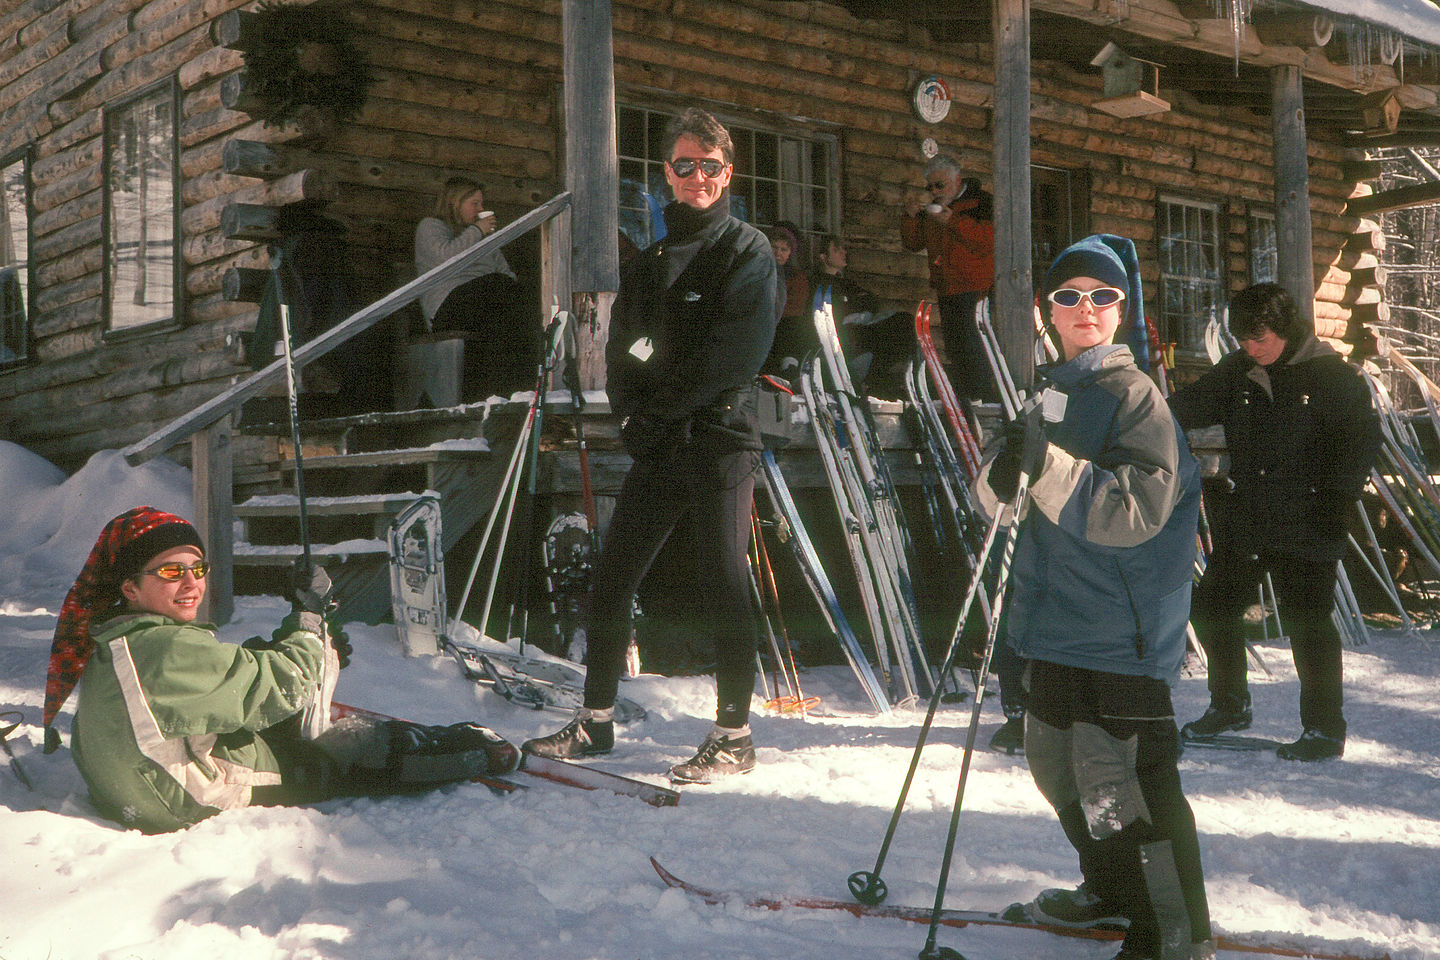 Herb and boys at warming hut on trail